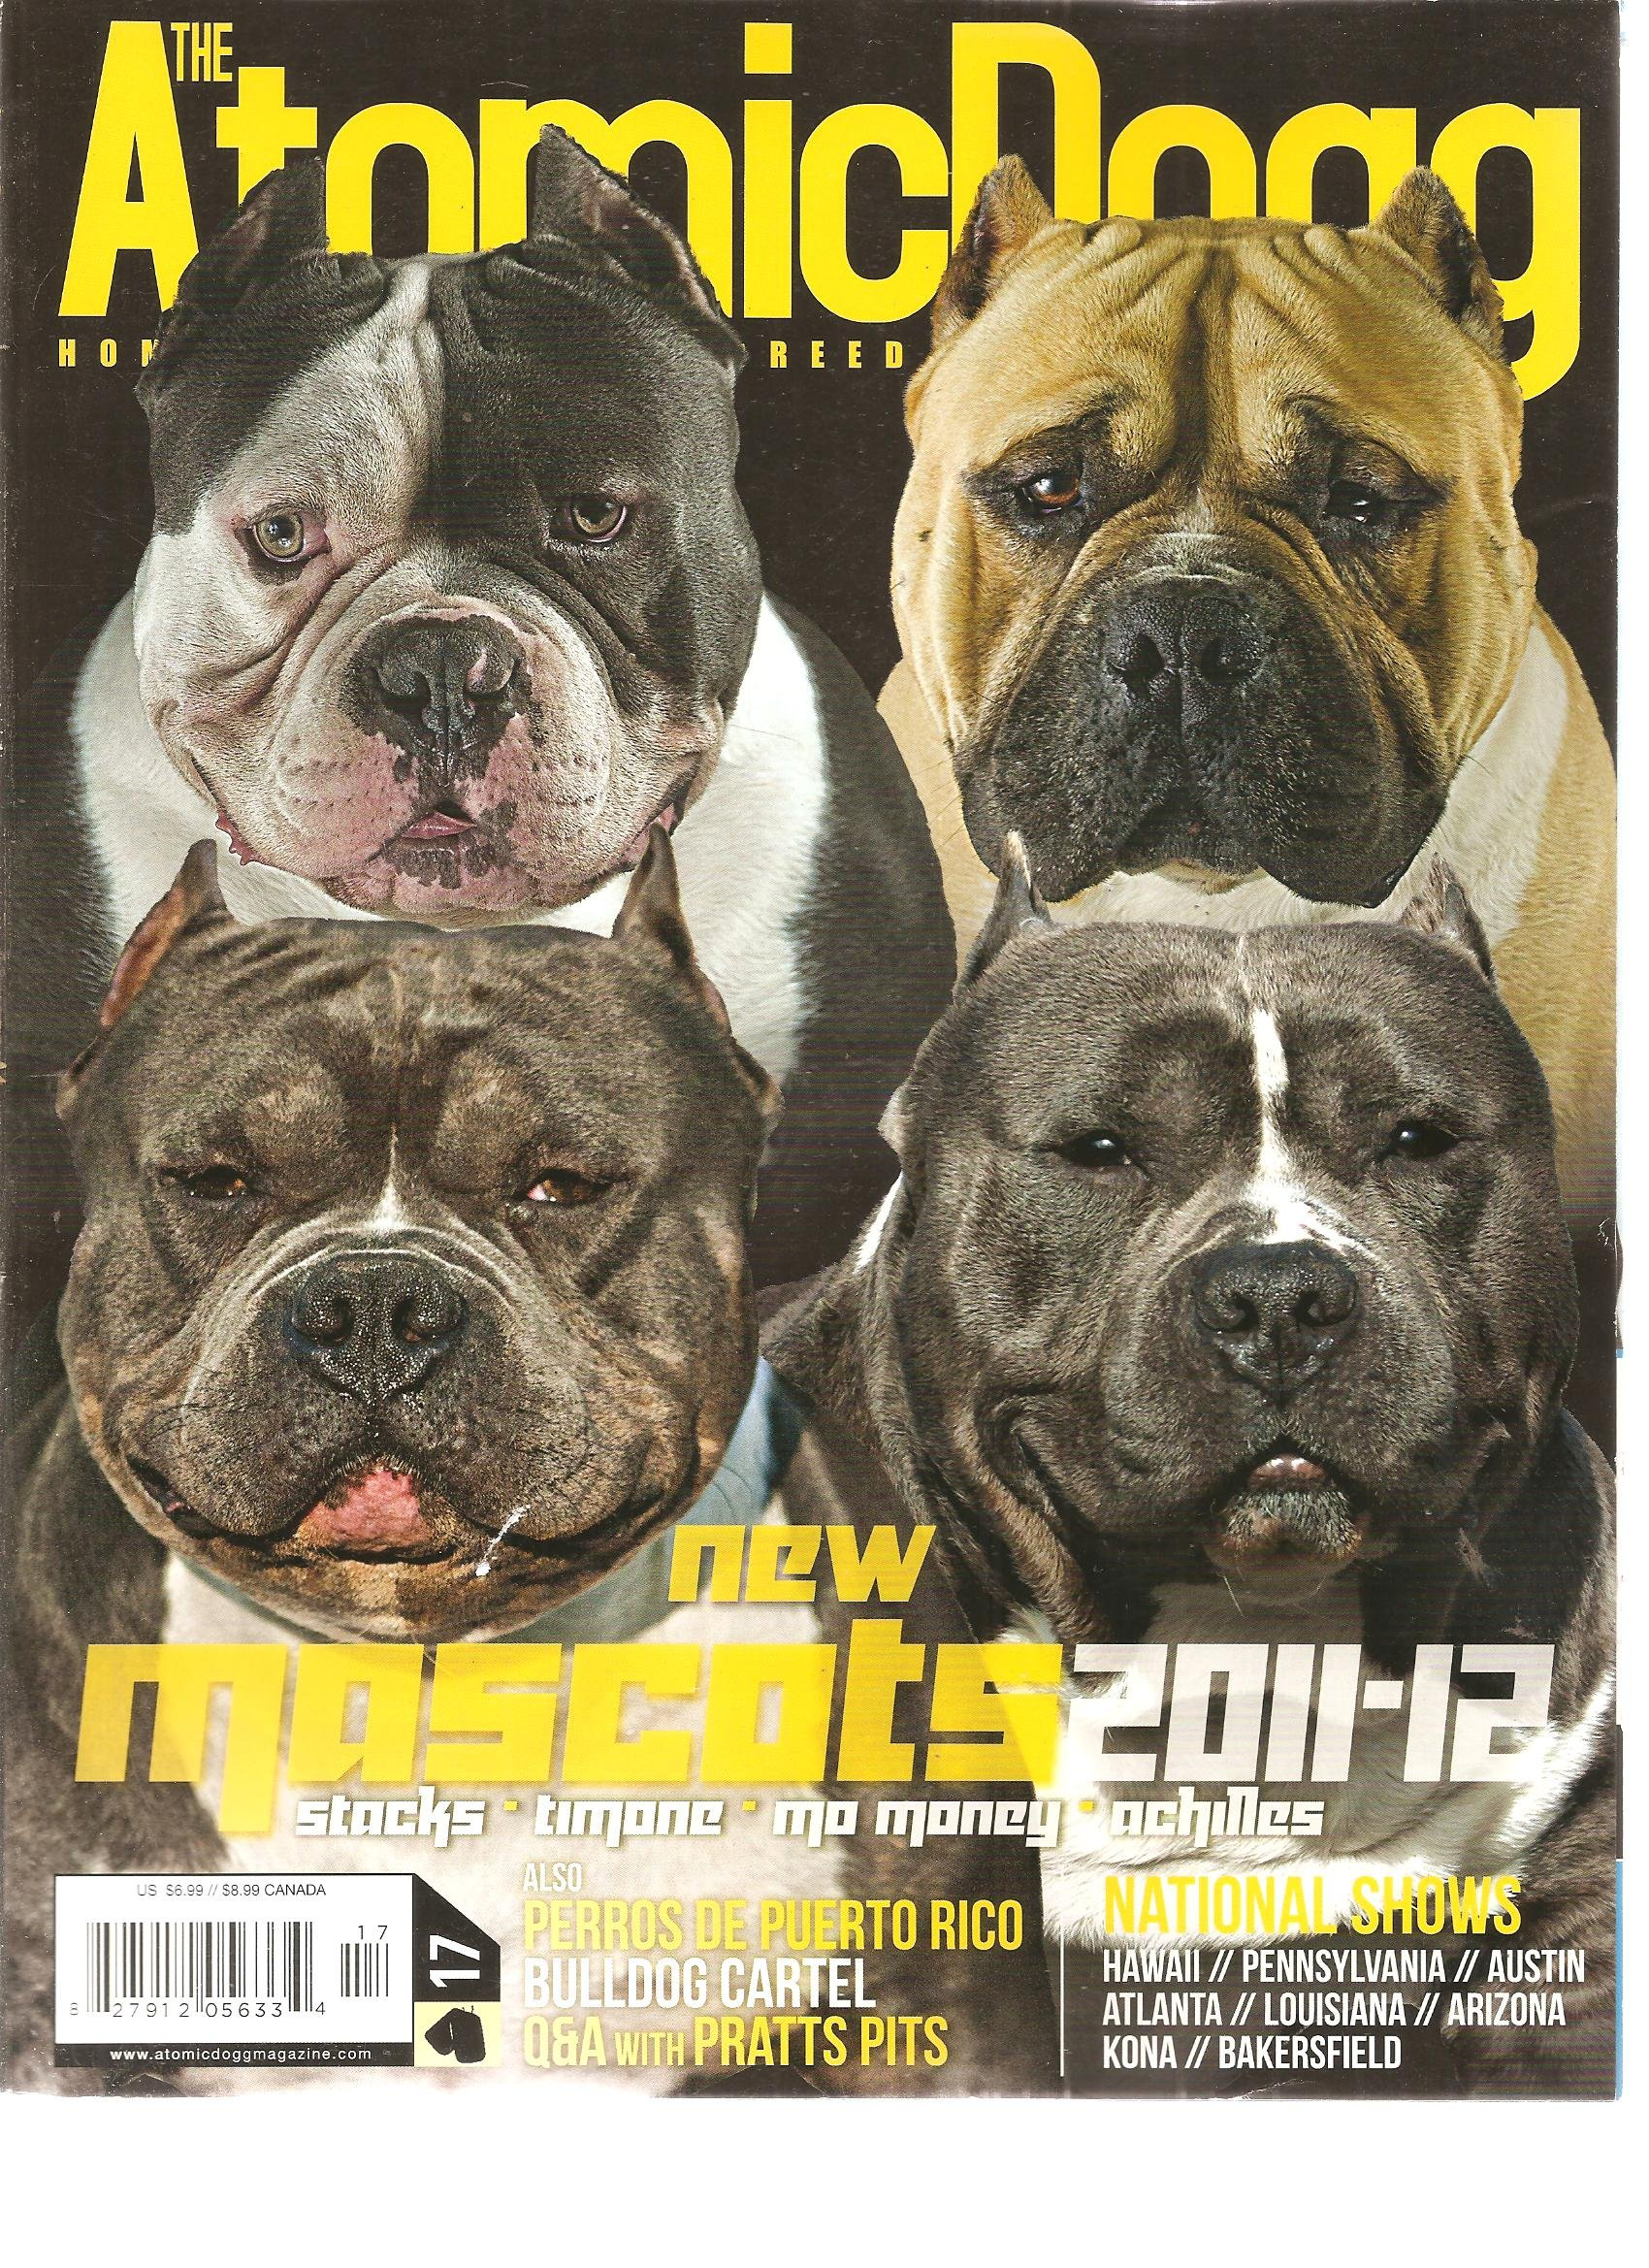 The Atomic Dogg Magazine (New MAscots 2011 2012, Issue 17